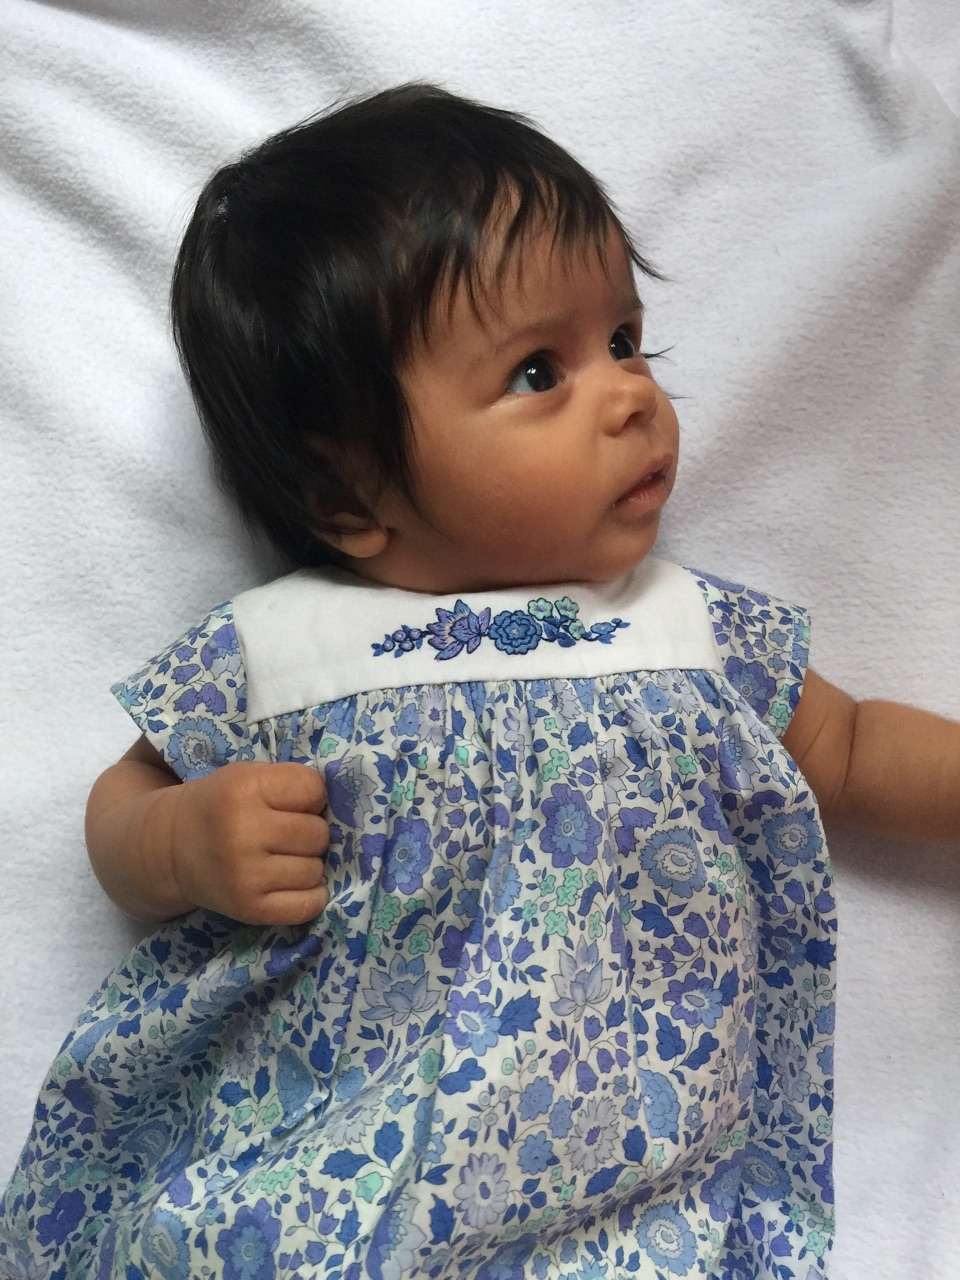 Nina in her handmade Liberty dress with delicate embroideries